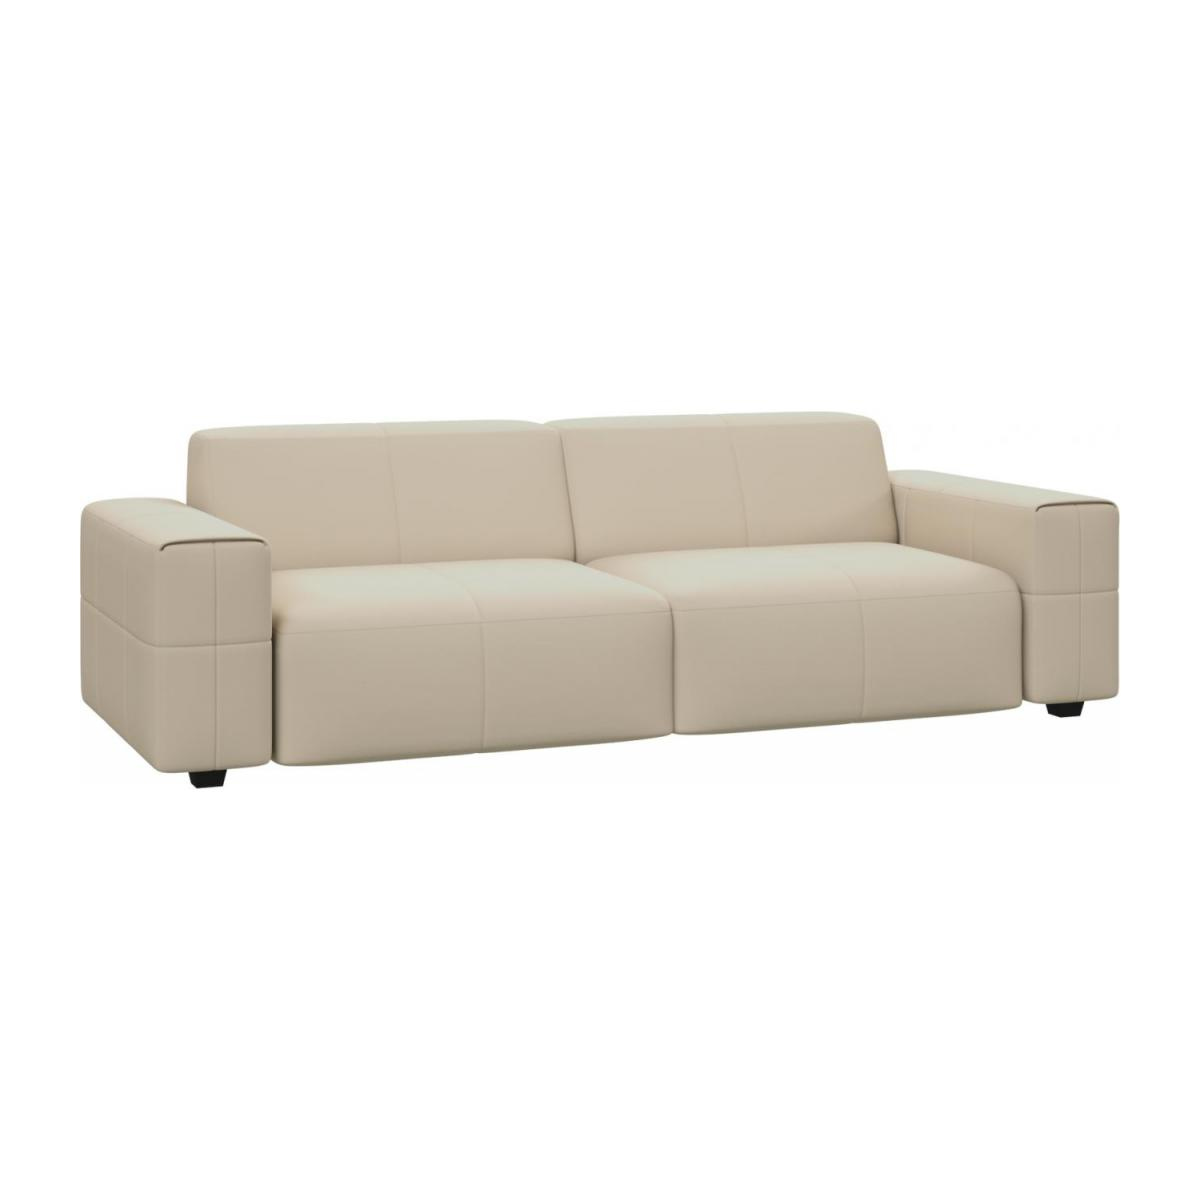 4 seater sofa in Savoy semi-aniline leather, off white n°1